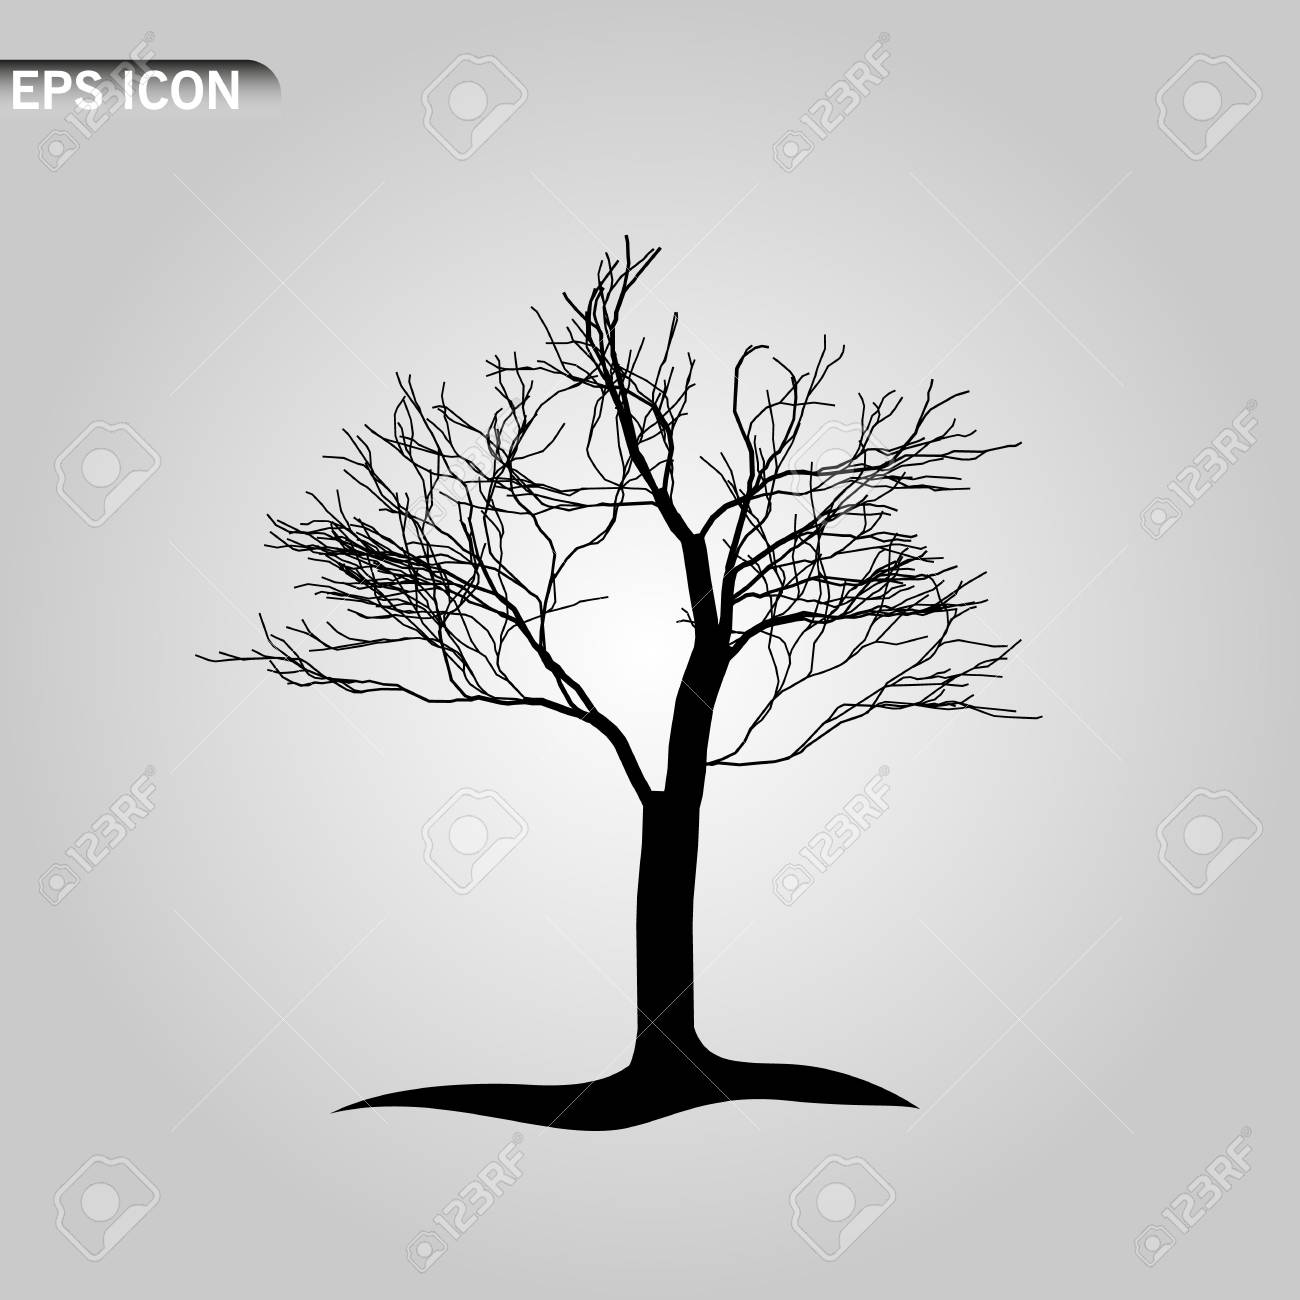 An Illustration Of A Scary Bare Black Tree Silhouette Eeps10 Royalty Free Cliparts Vectors And Stock Illustration Image 121859928